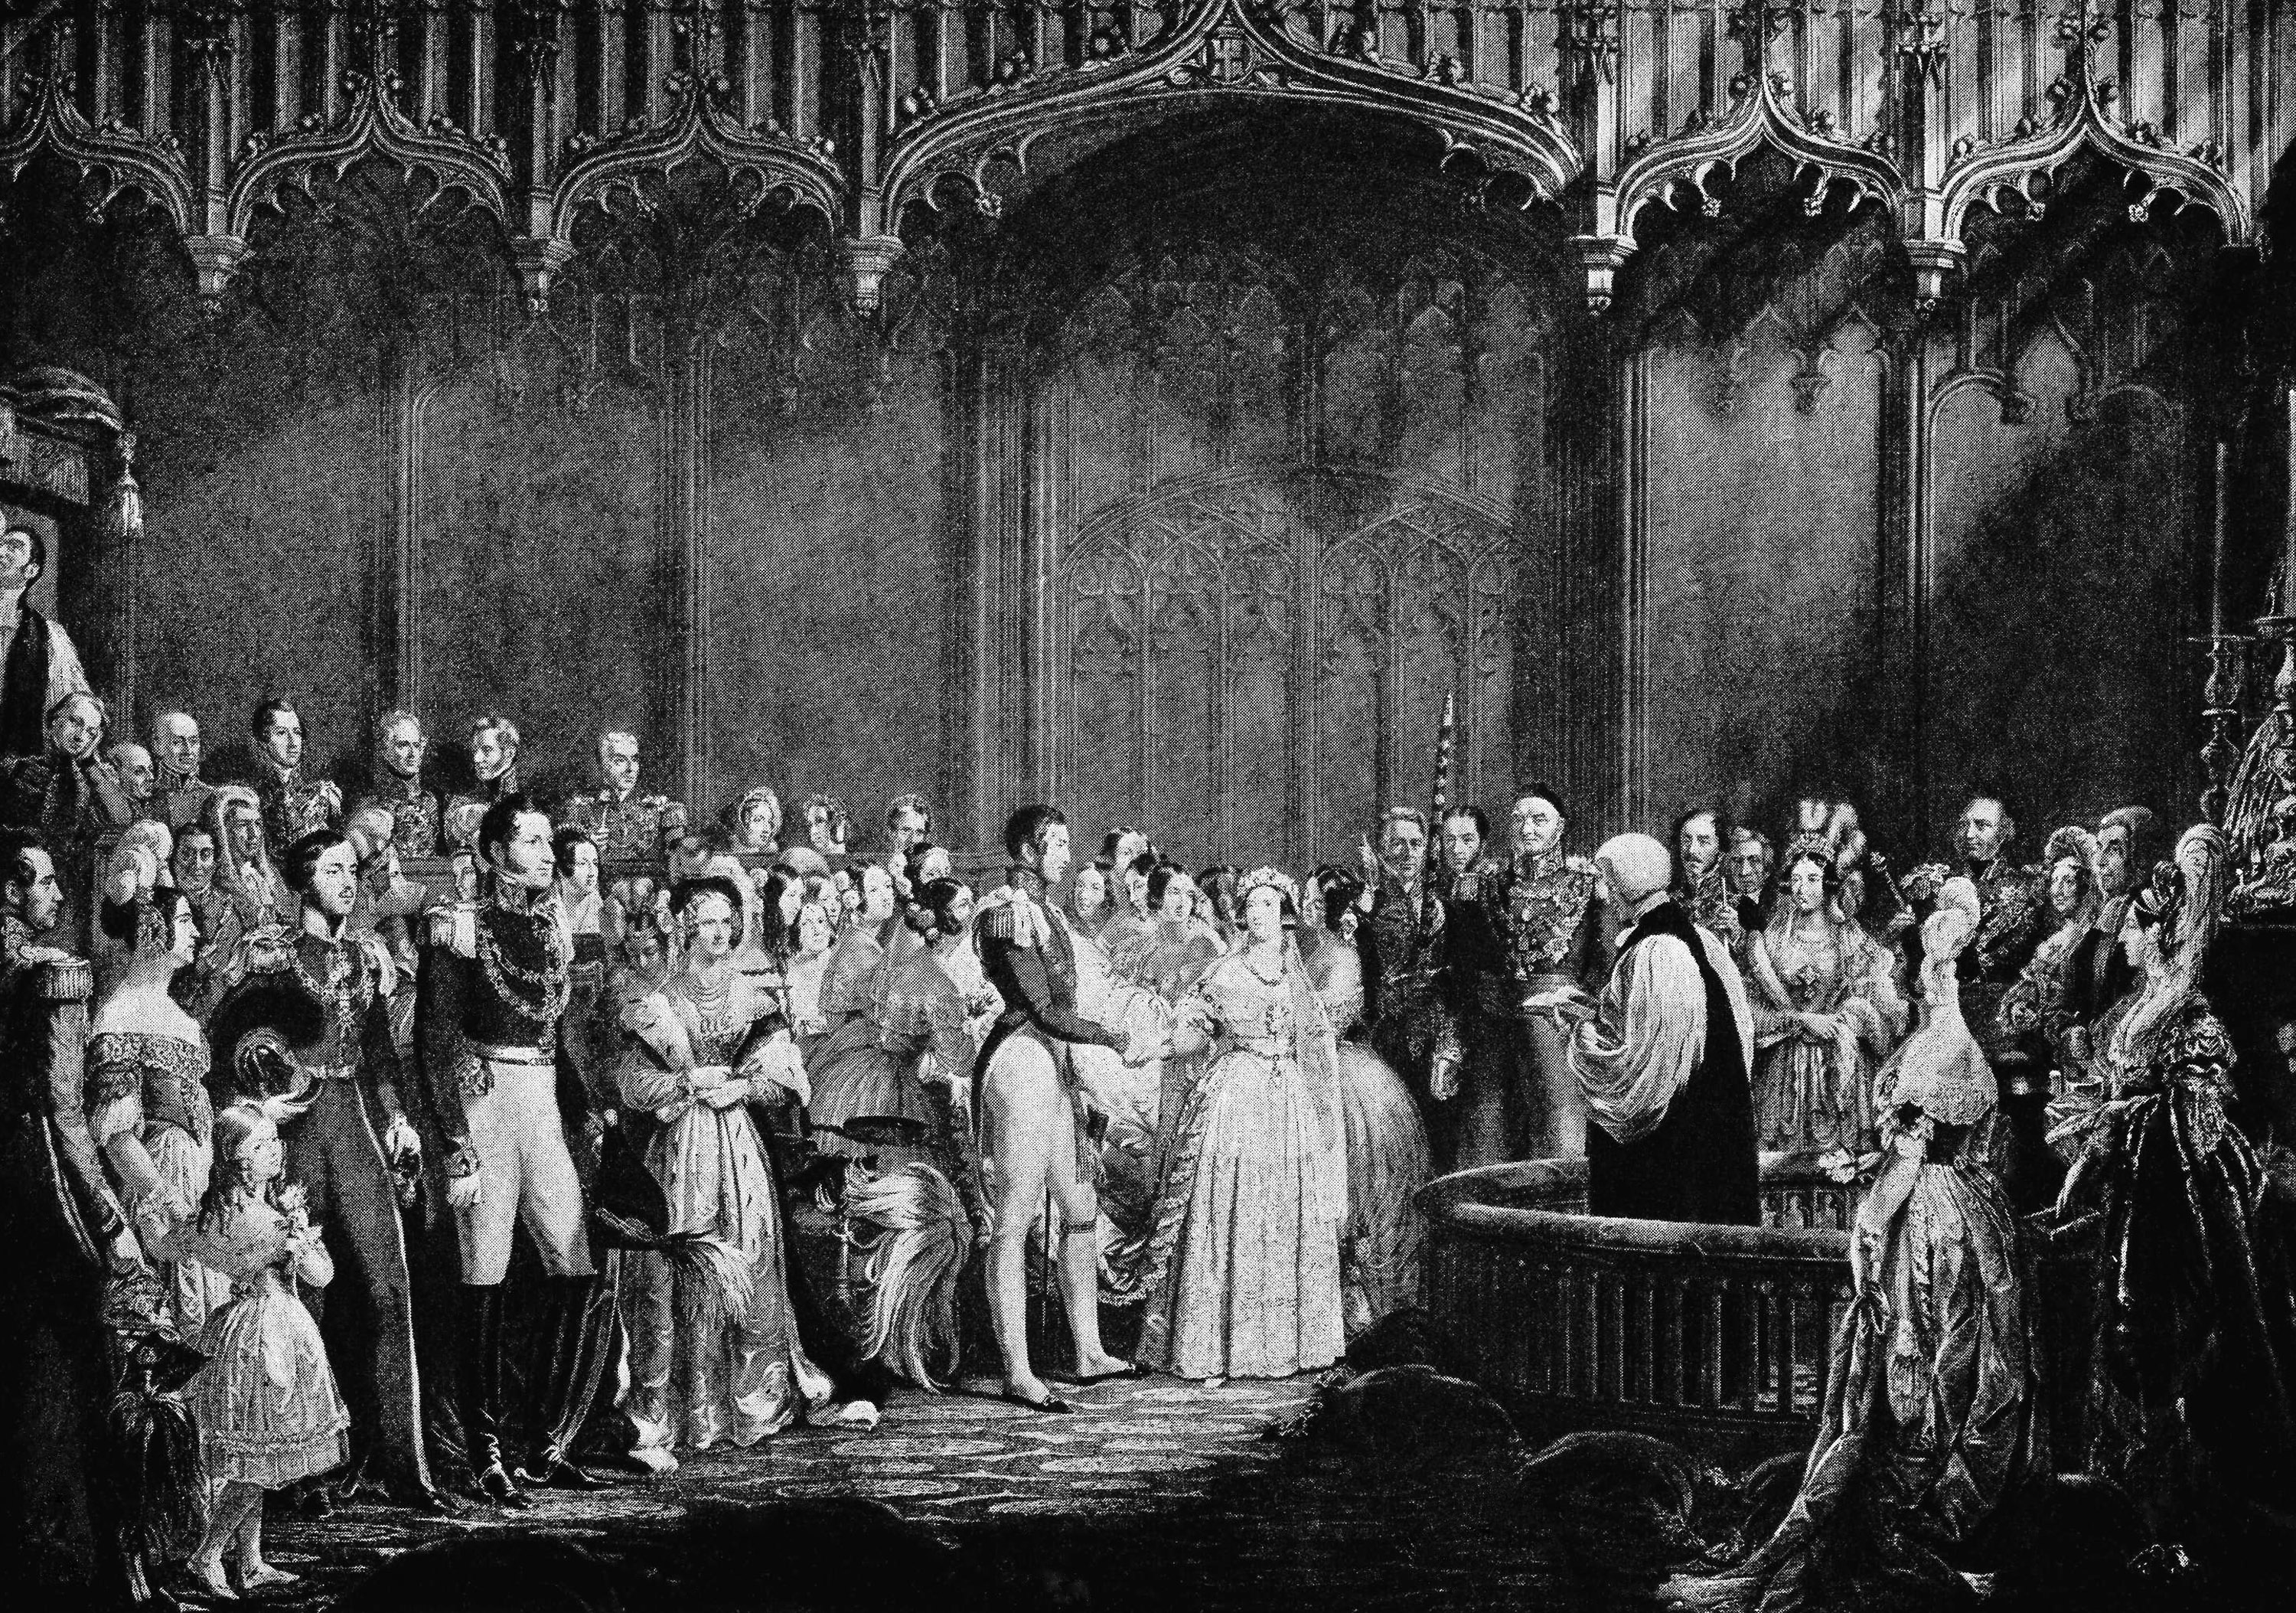 FILE - In this Feb. 10, 1840 file image, an illustration depicts the wedding of Britain's Queen Victoria, centre right, and to Prince Albert, centre left, in The Chapel Royal at St. James's Palace in London, England. The celebrated silk-and-lace bridal gown worn by Queen Victoria offers some clues about what Kate Middleton will wear when she walks down the aisle April 29, even if much has changed since Victoria's low-key wedding in 1840. Just as Victoria used English lace and silk woven in London to show support for British industry, Middleton faces overwhelming pressure to use a British designer. (AP Photo/File)